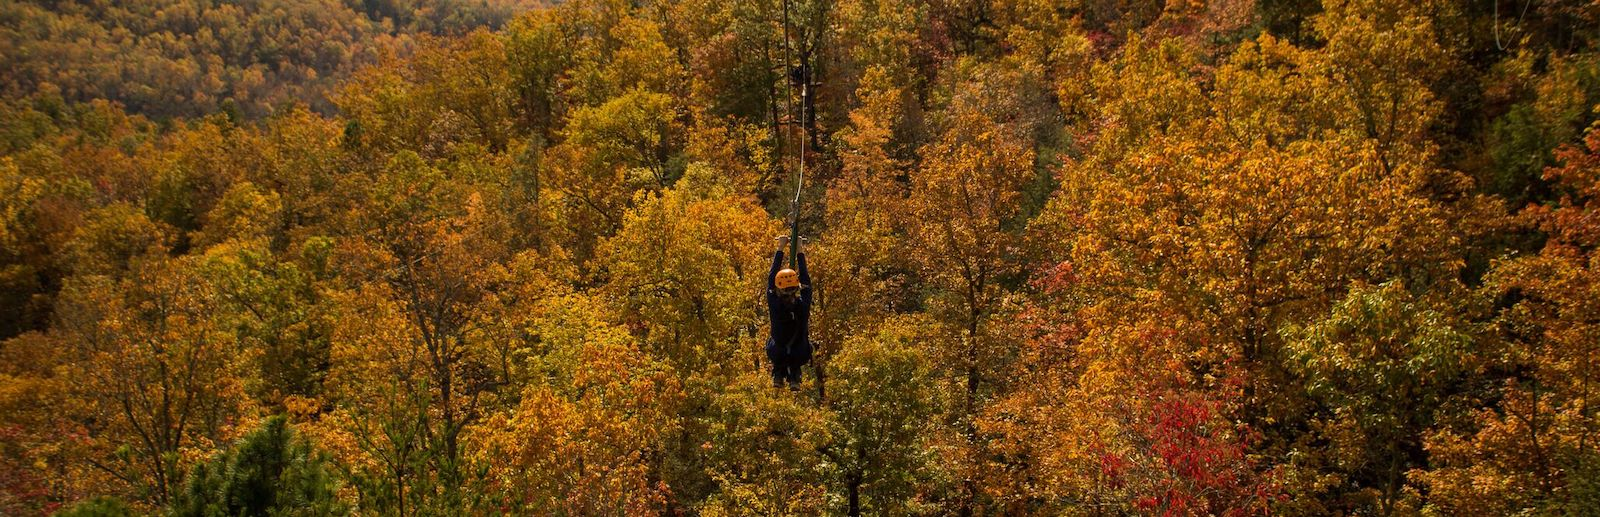 Why Our Mountaintop Zipline Tour is the Best Way to Celebrate Fall in the Smoky Mountains